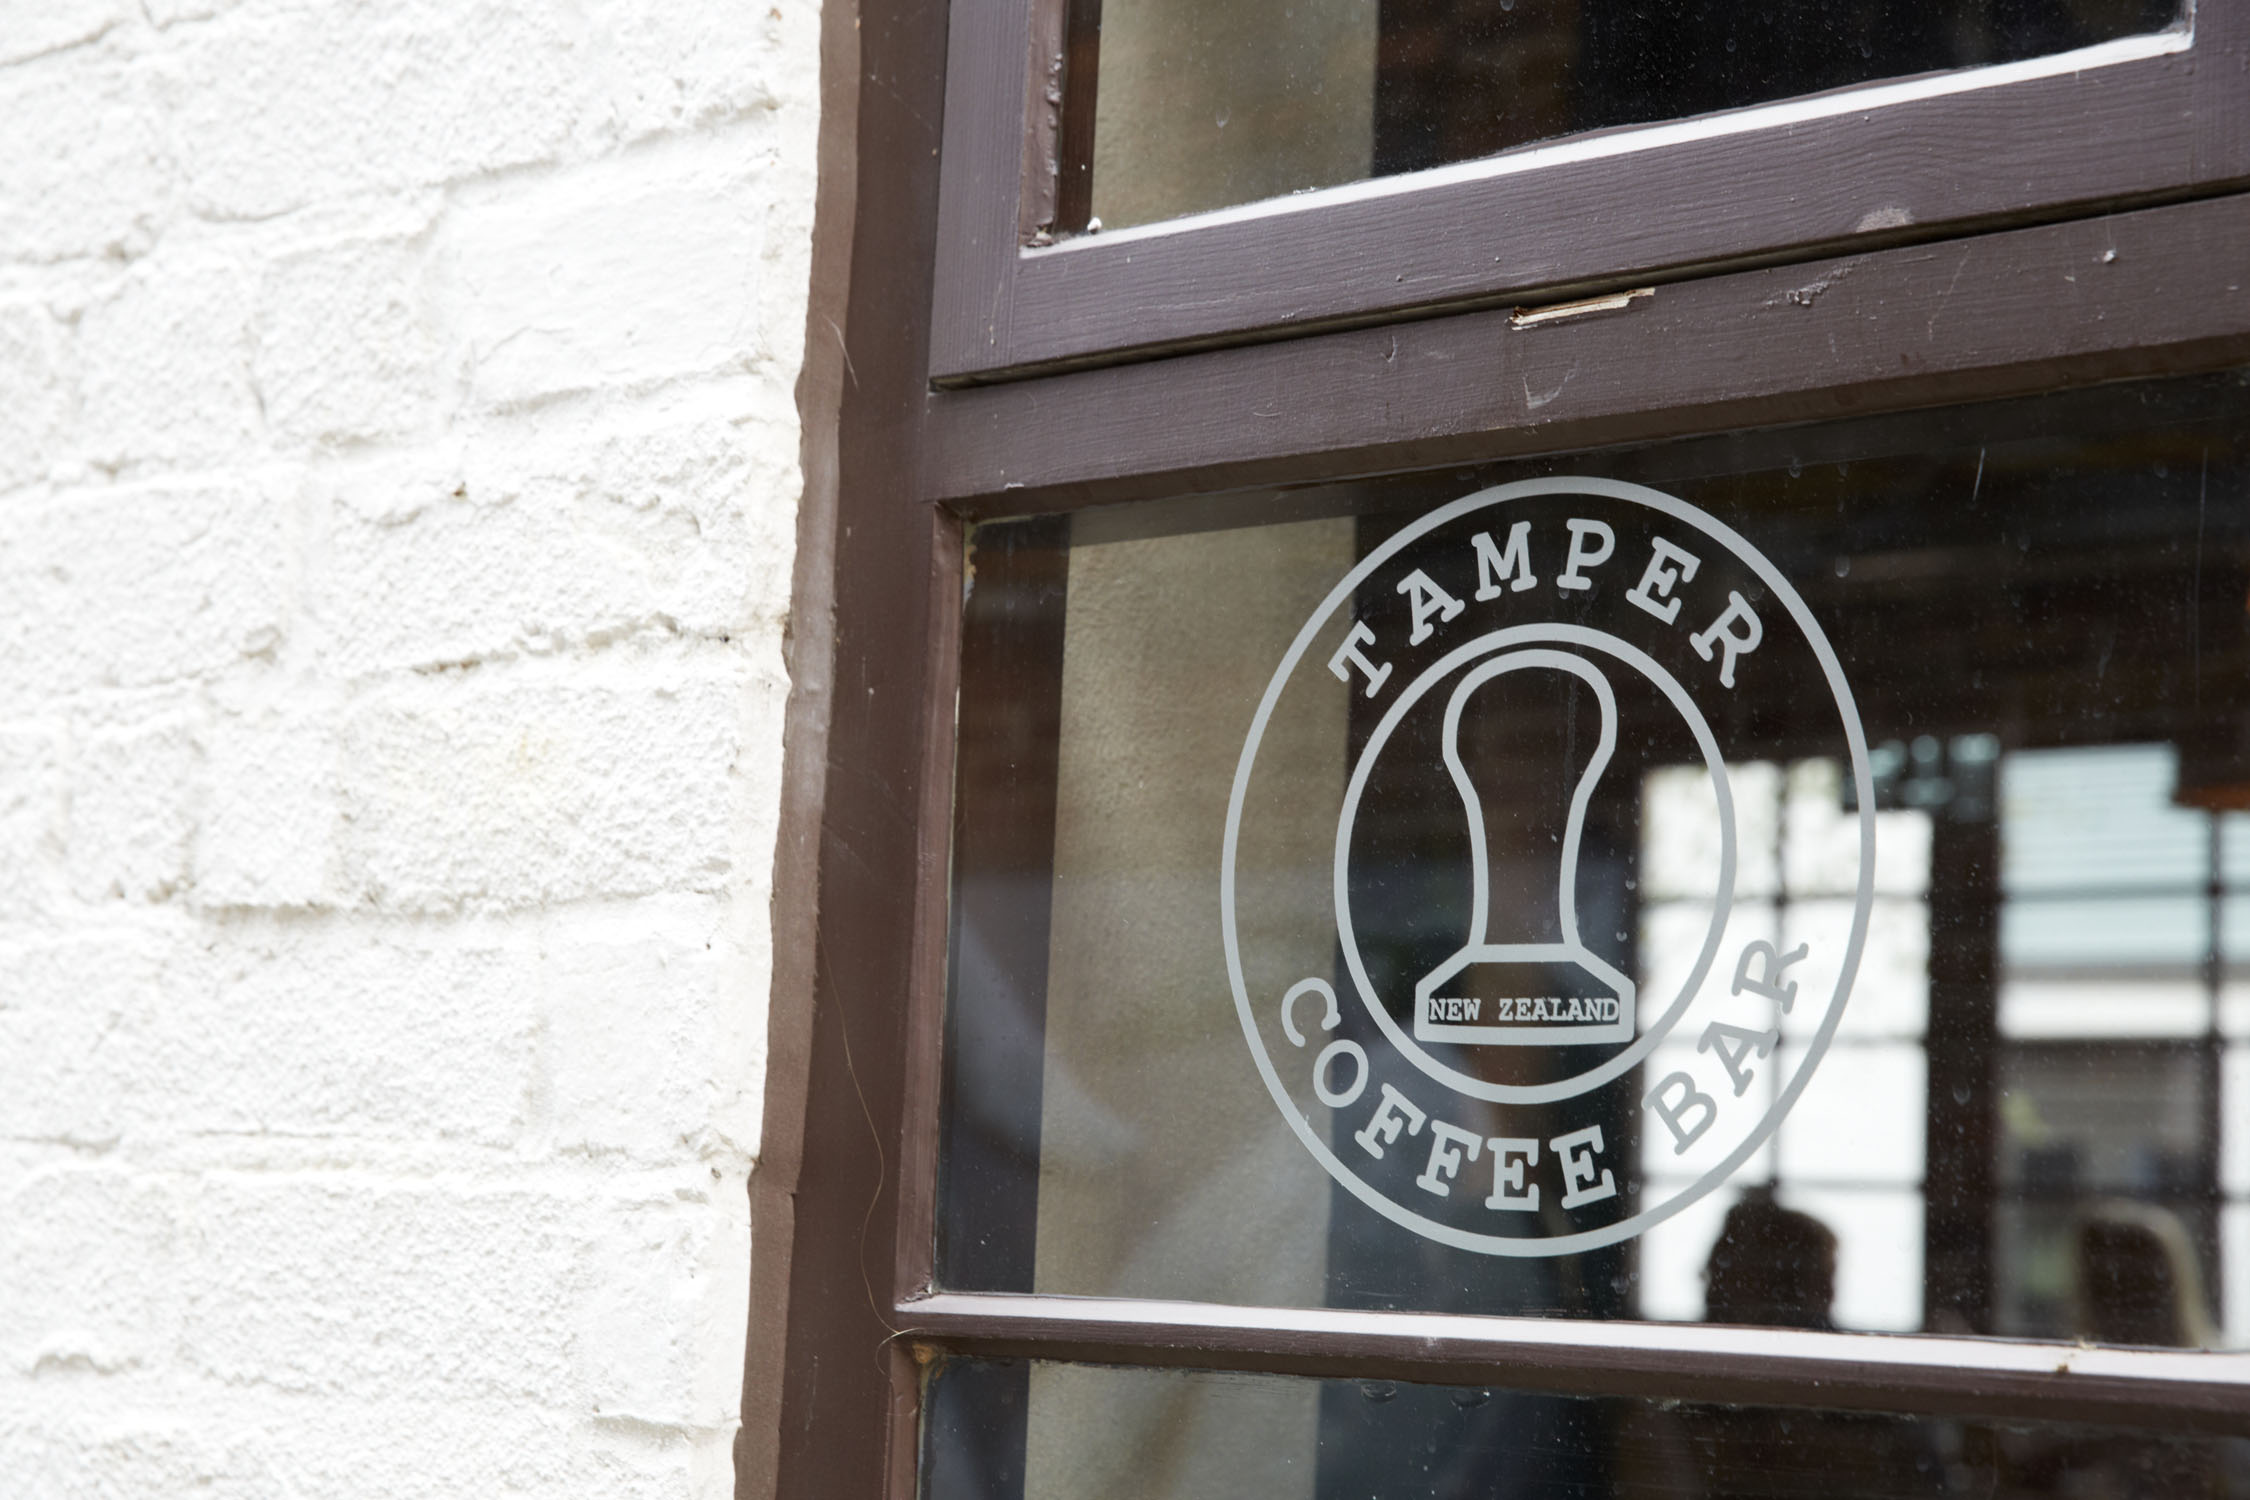 Tamper Sellers Wheel Our Favourite Places Sheffield